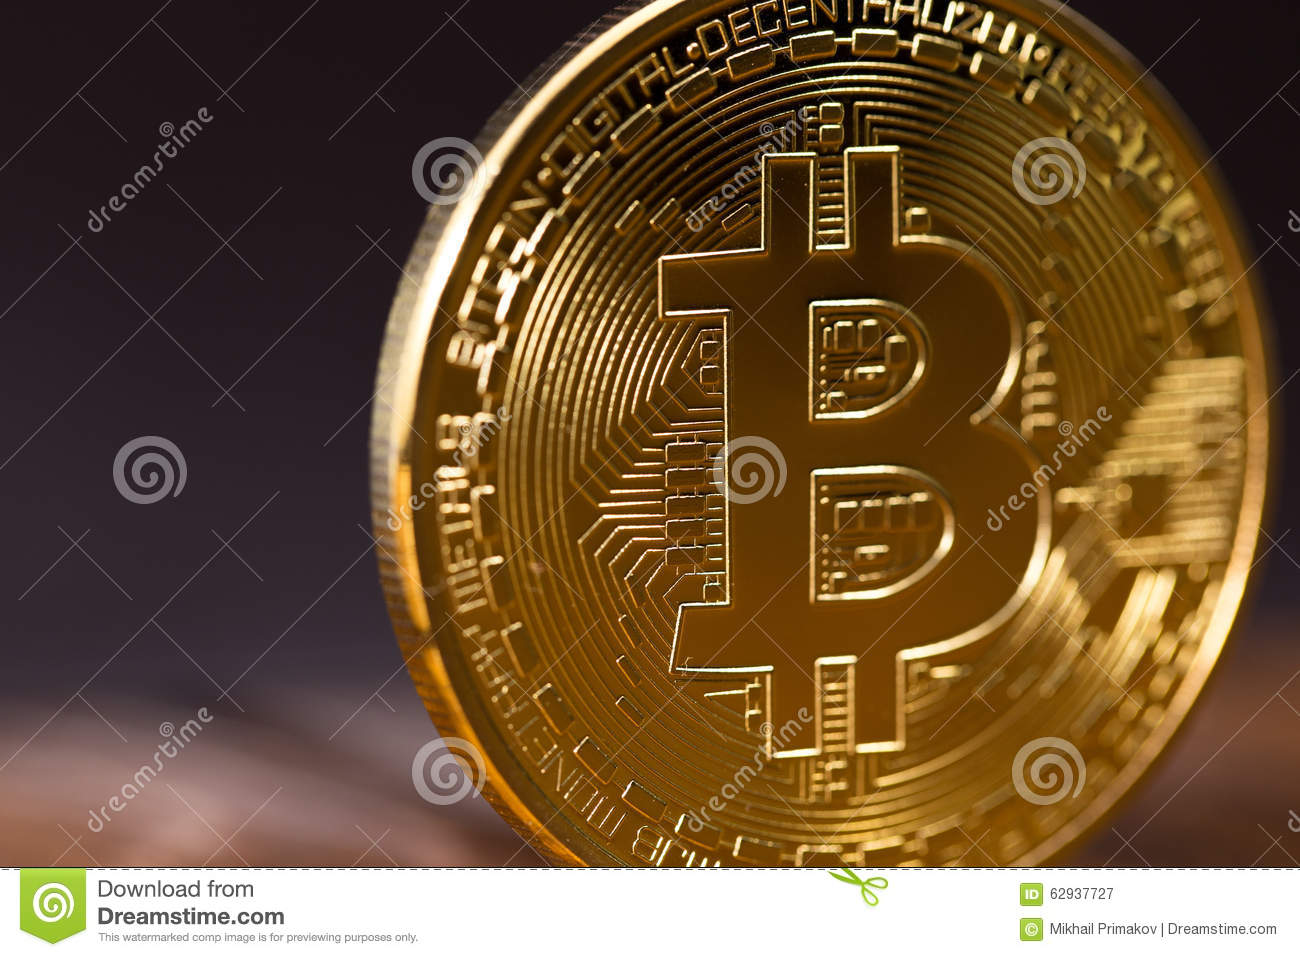 Stock market symbol for bitcoin segwit2x countdown facebook just killed ticker is there a bitcoin ticker symbol litecoin ultra home wix todays stock market news and analysis nasdaq buycottarizona Images